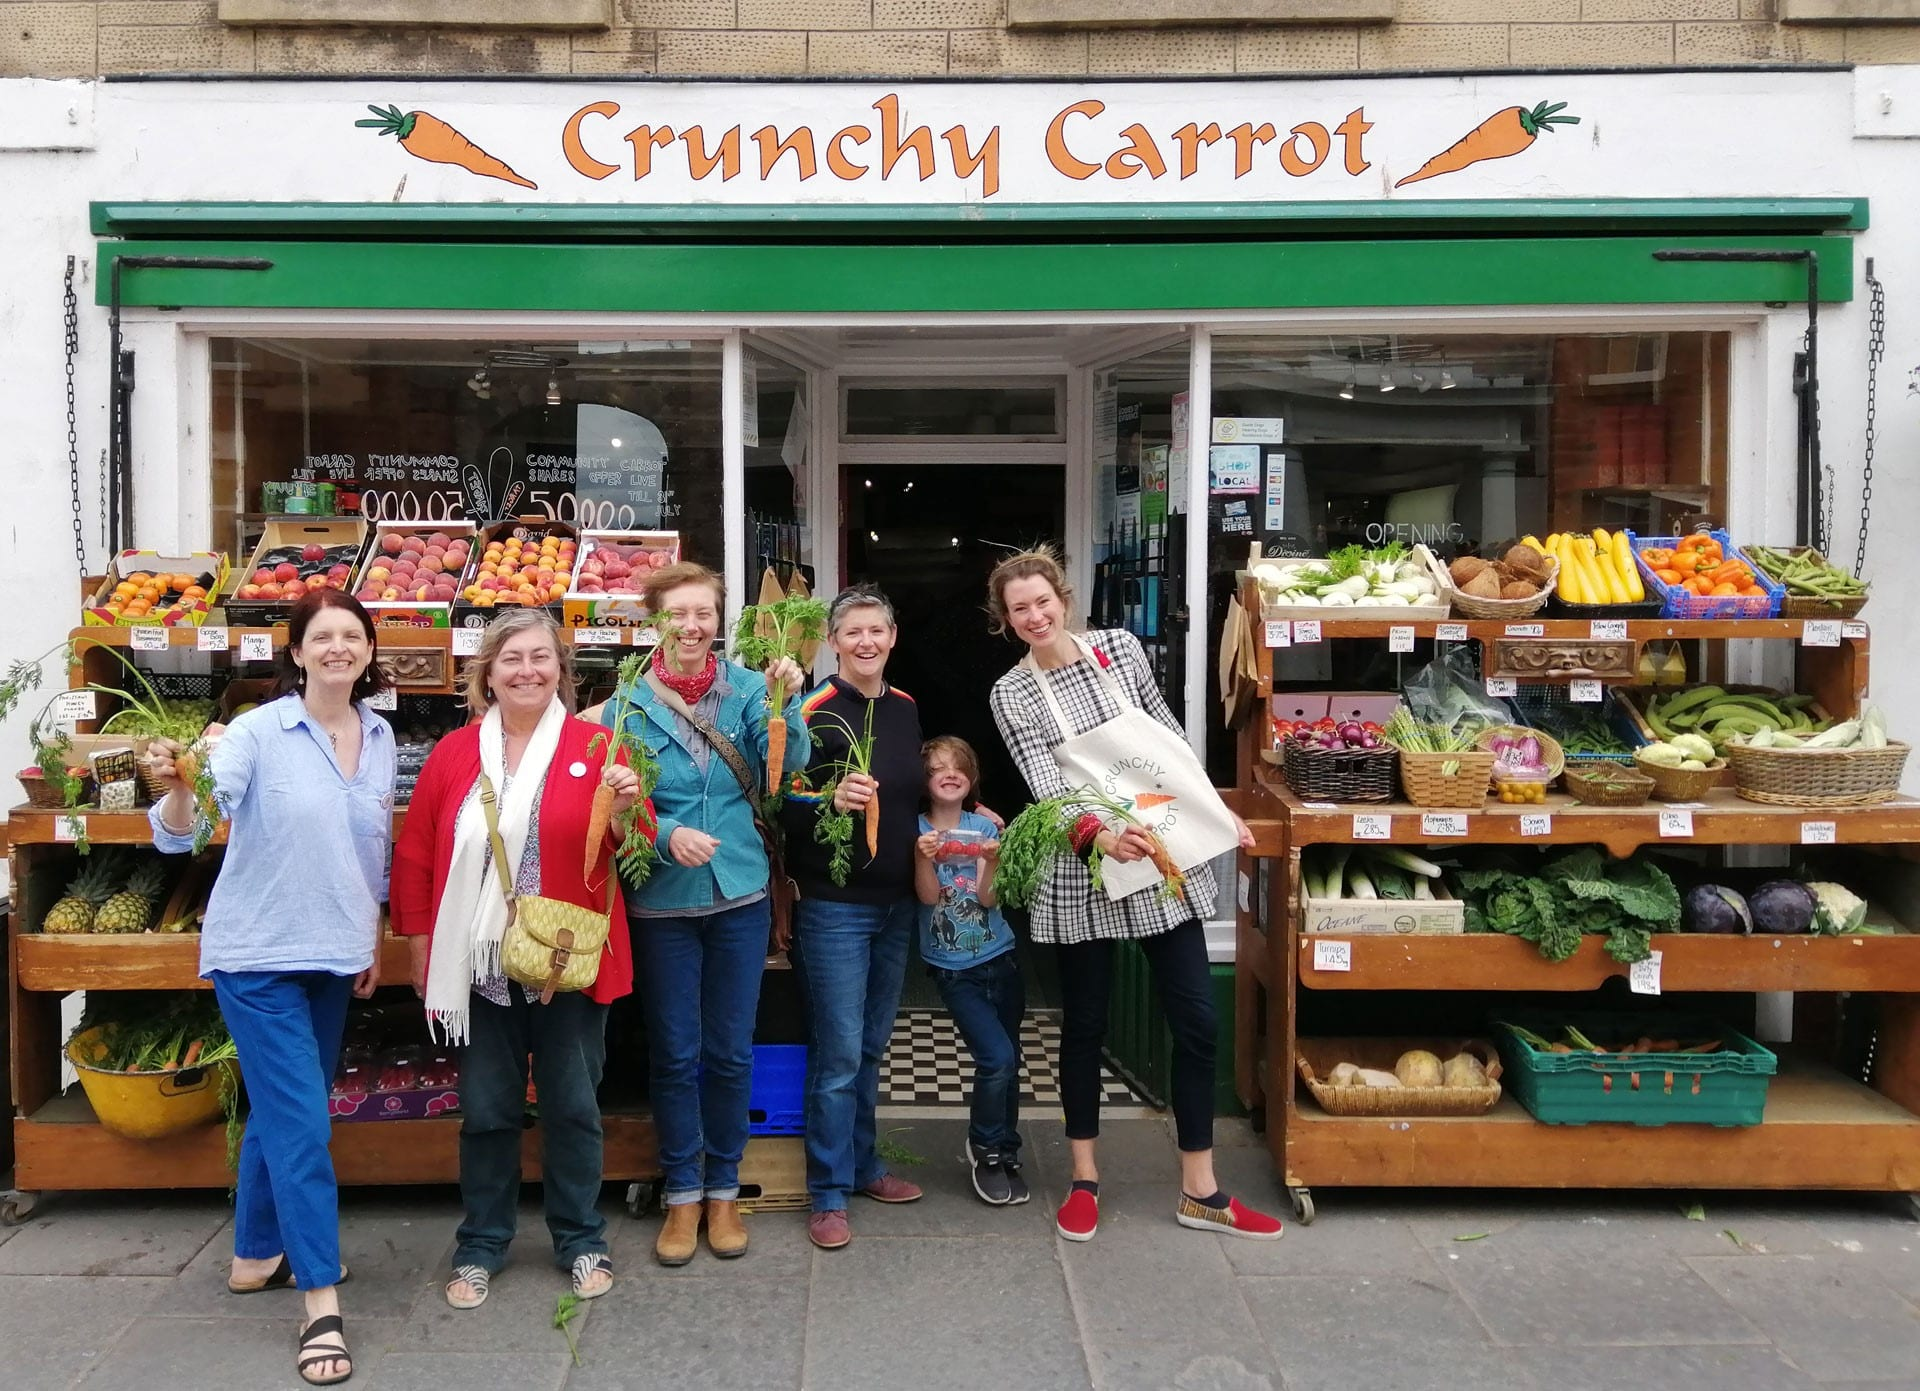 Outside view of the Crunchy Carrot on Dunbar High Street with vegetables displayed and people holding up fresh carrots